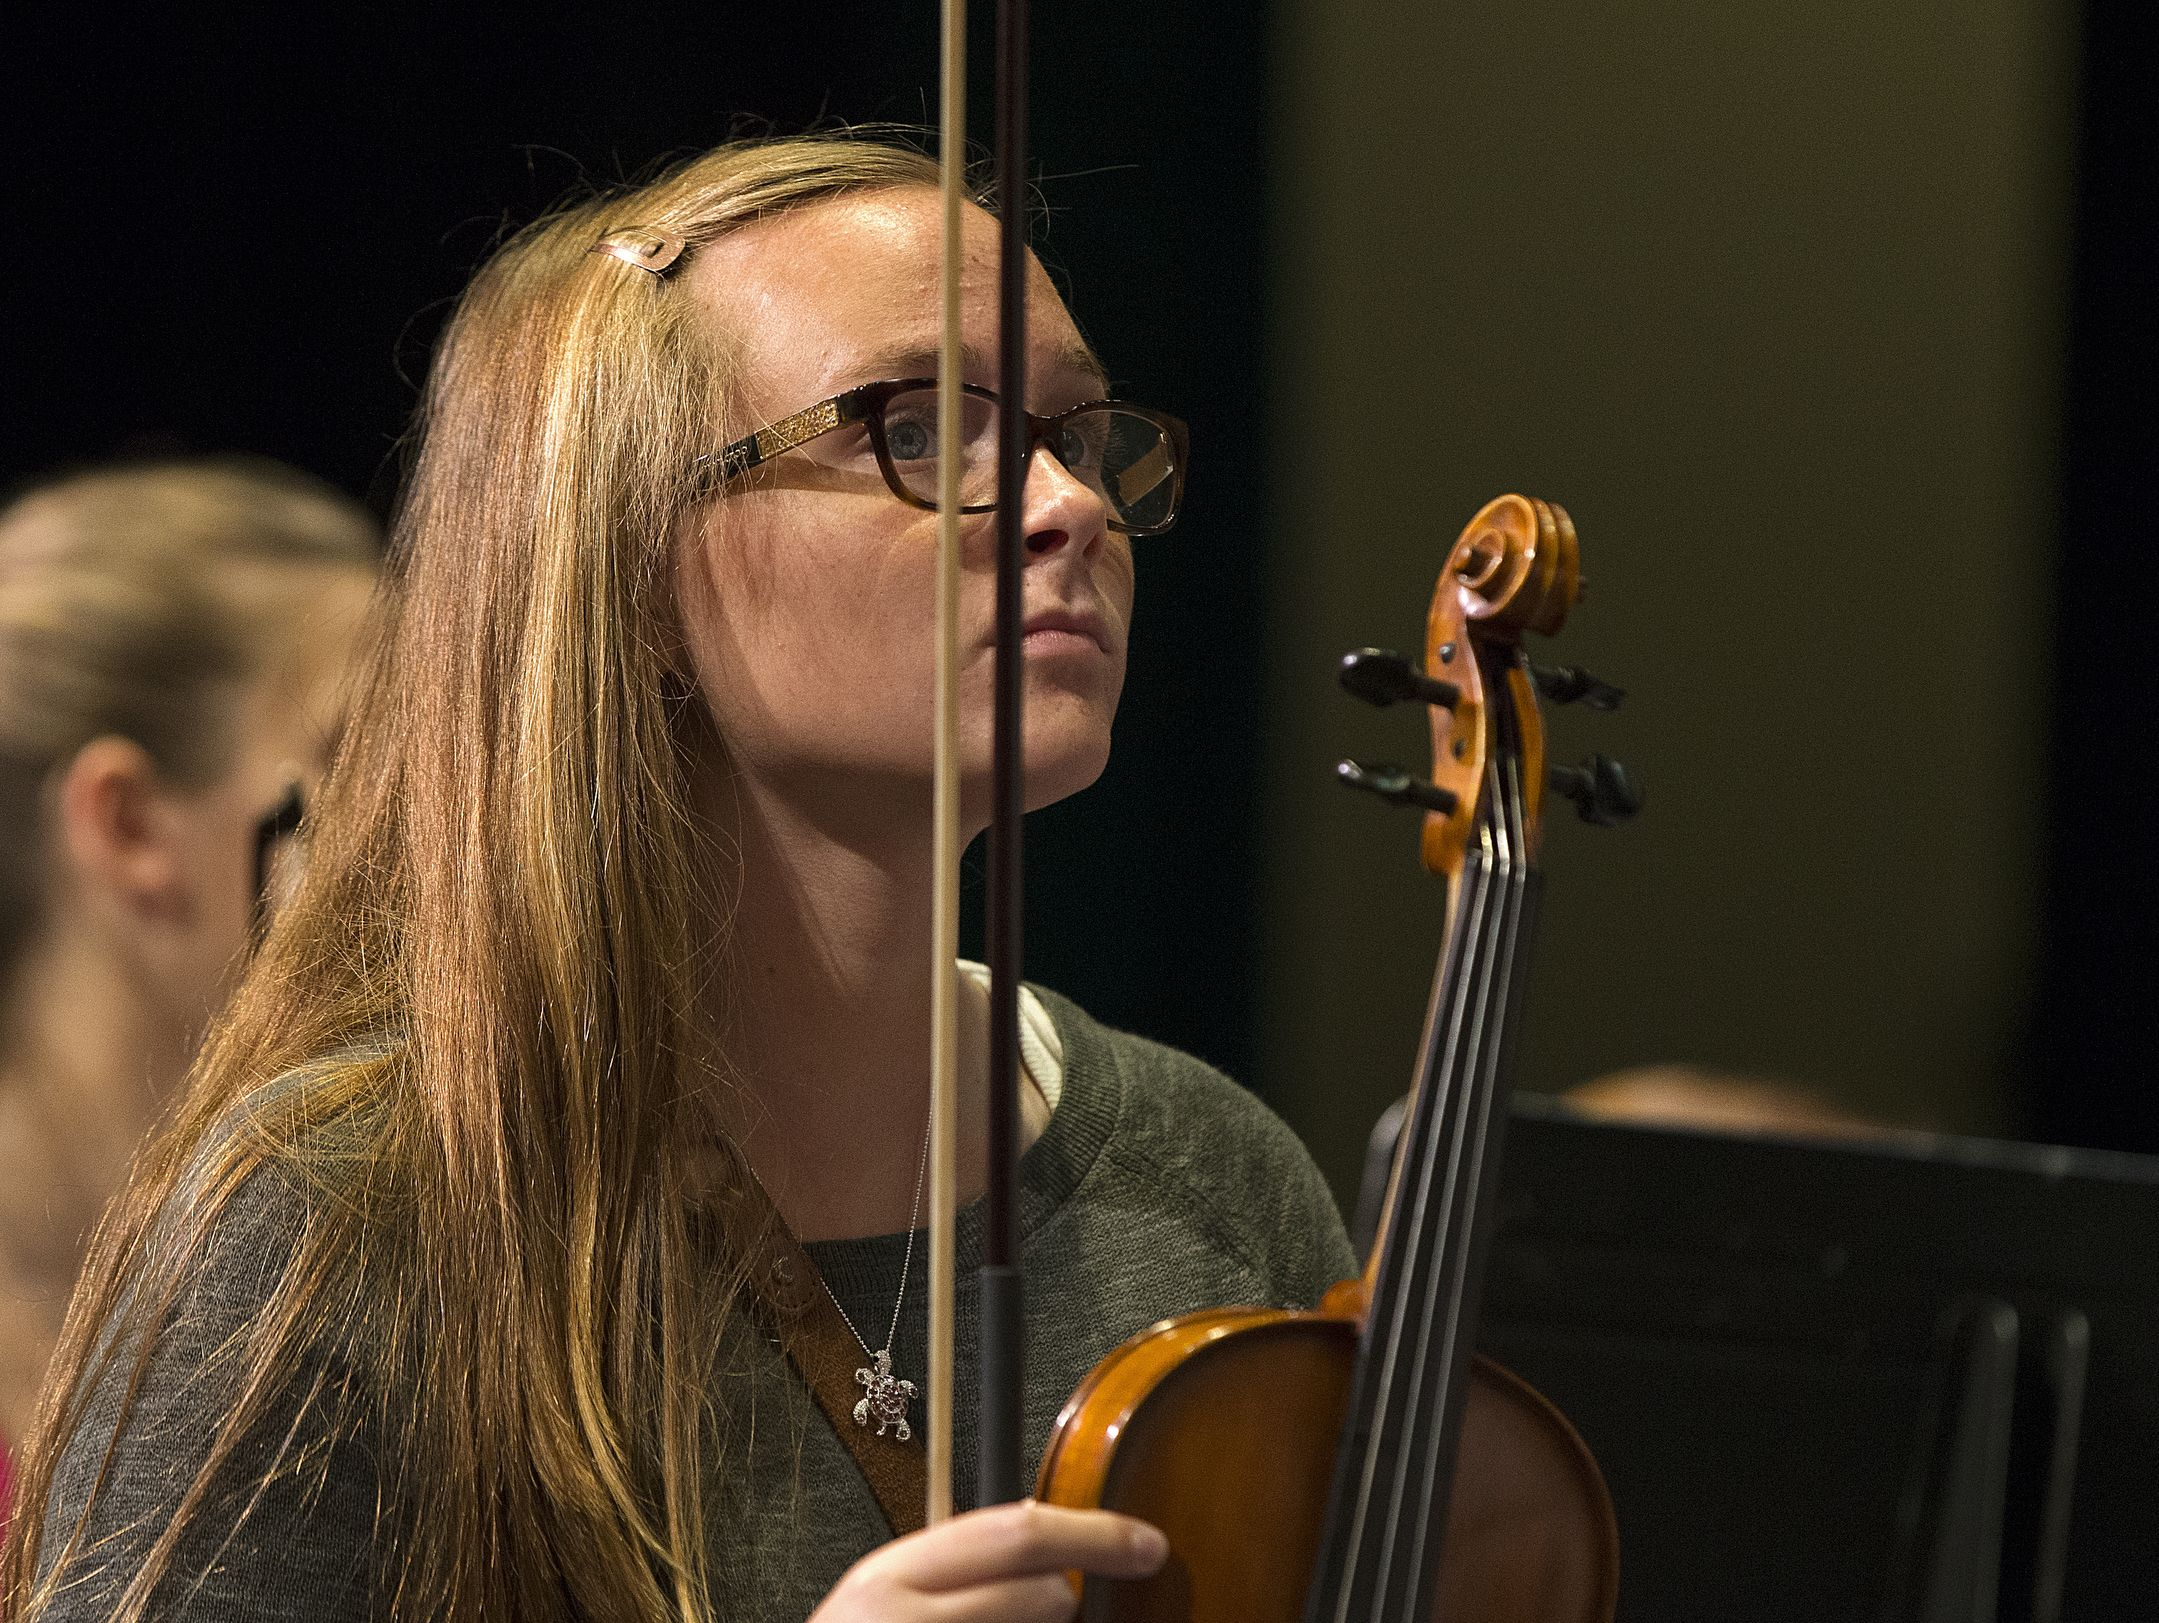 Caroline Kavanaugh rehearses for an orchestra concert during the school day at Perry Meridian High School, Tuesday, October 4, 2016.